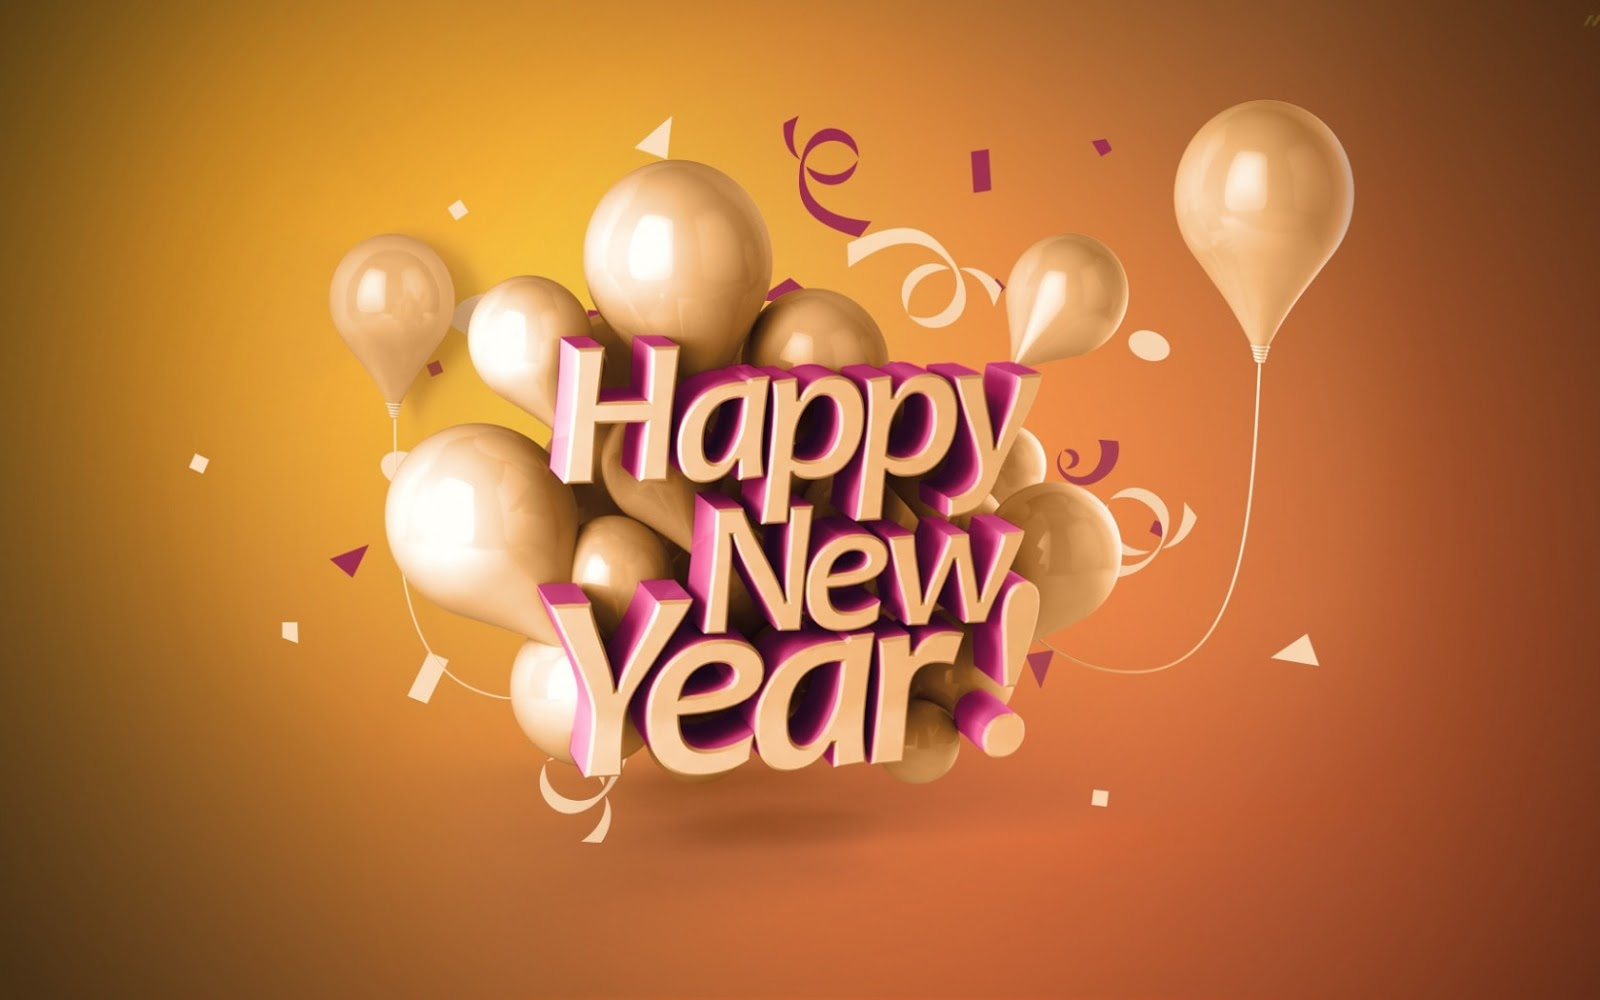 Happy New Year 2020 Wallpaper 3D